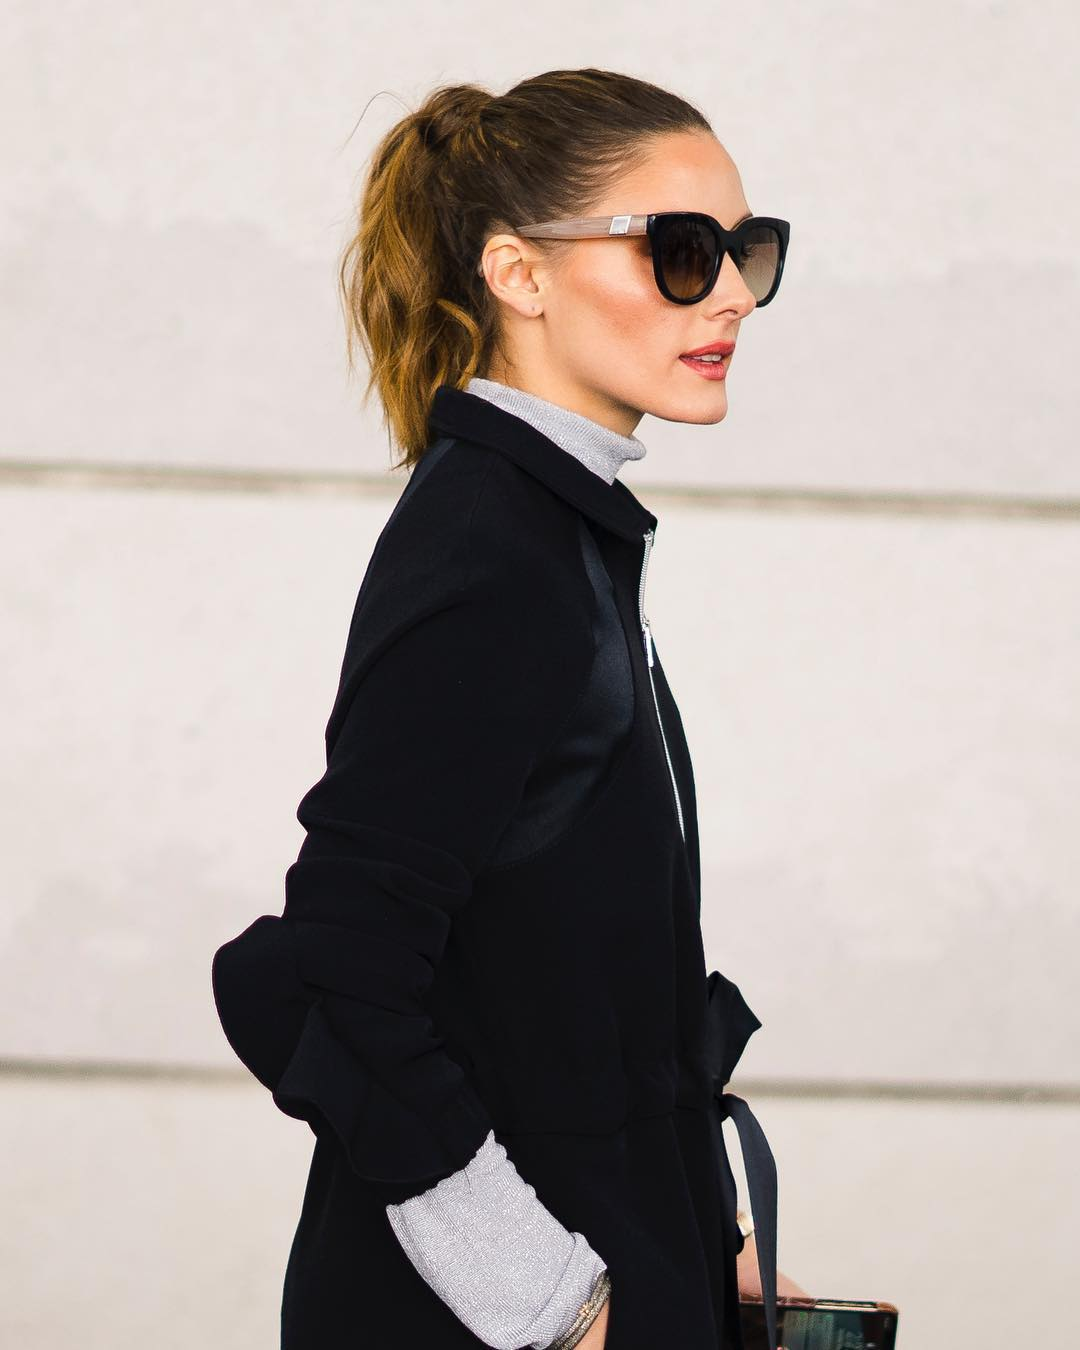 olivia-palermo in westward leaning moore 03 black and brown